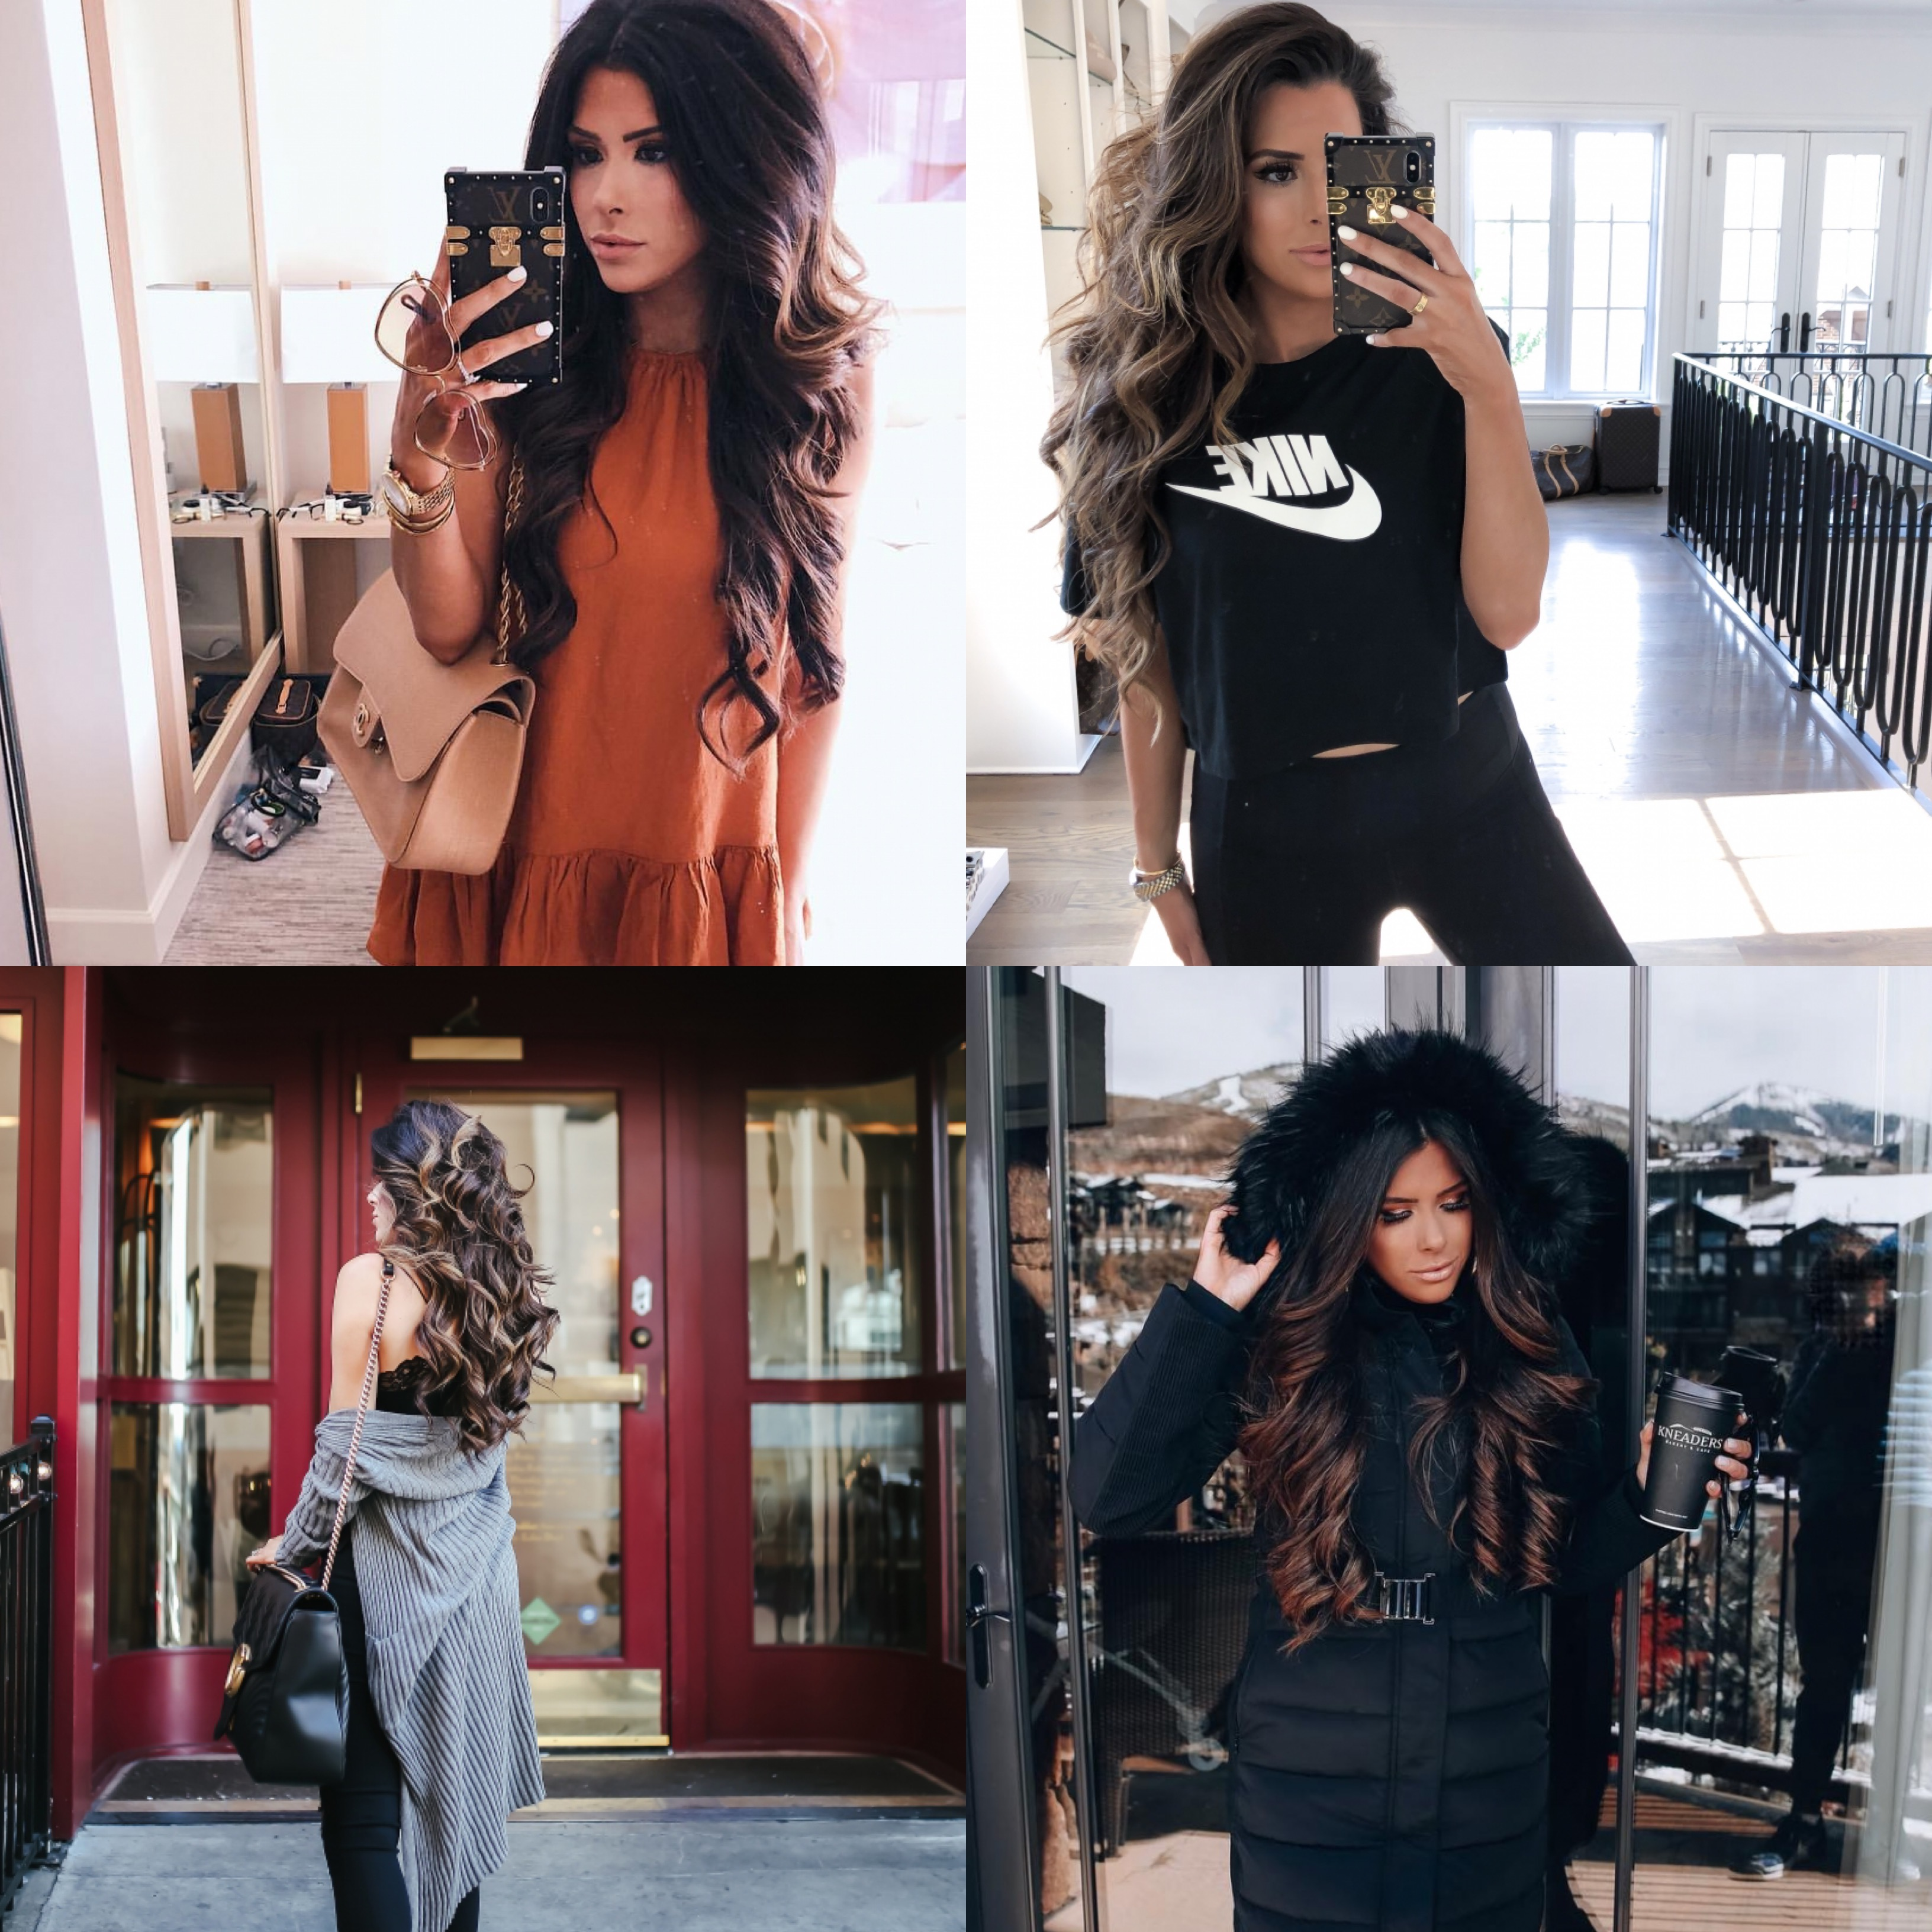 best black friday sales, t3micro black friday sales, emily gemma | Mega Black Friday Sales and Deals Guide!! by popular Oklahoma life and style blog, The Sweetest Thing: collage image of a woman wearing various Black Friday sale items.